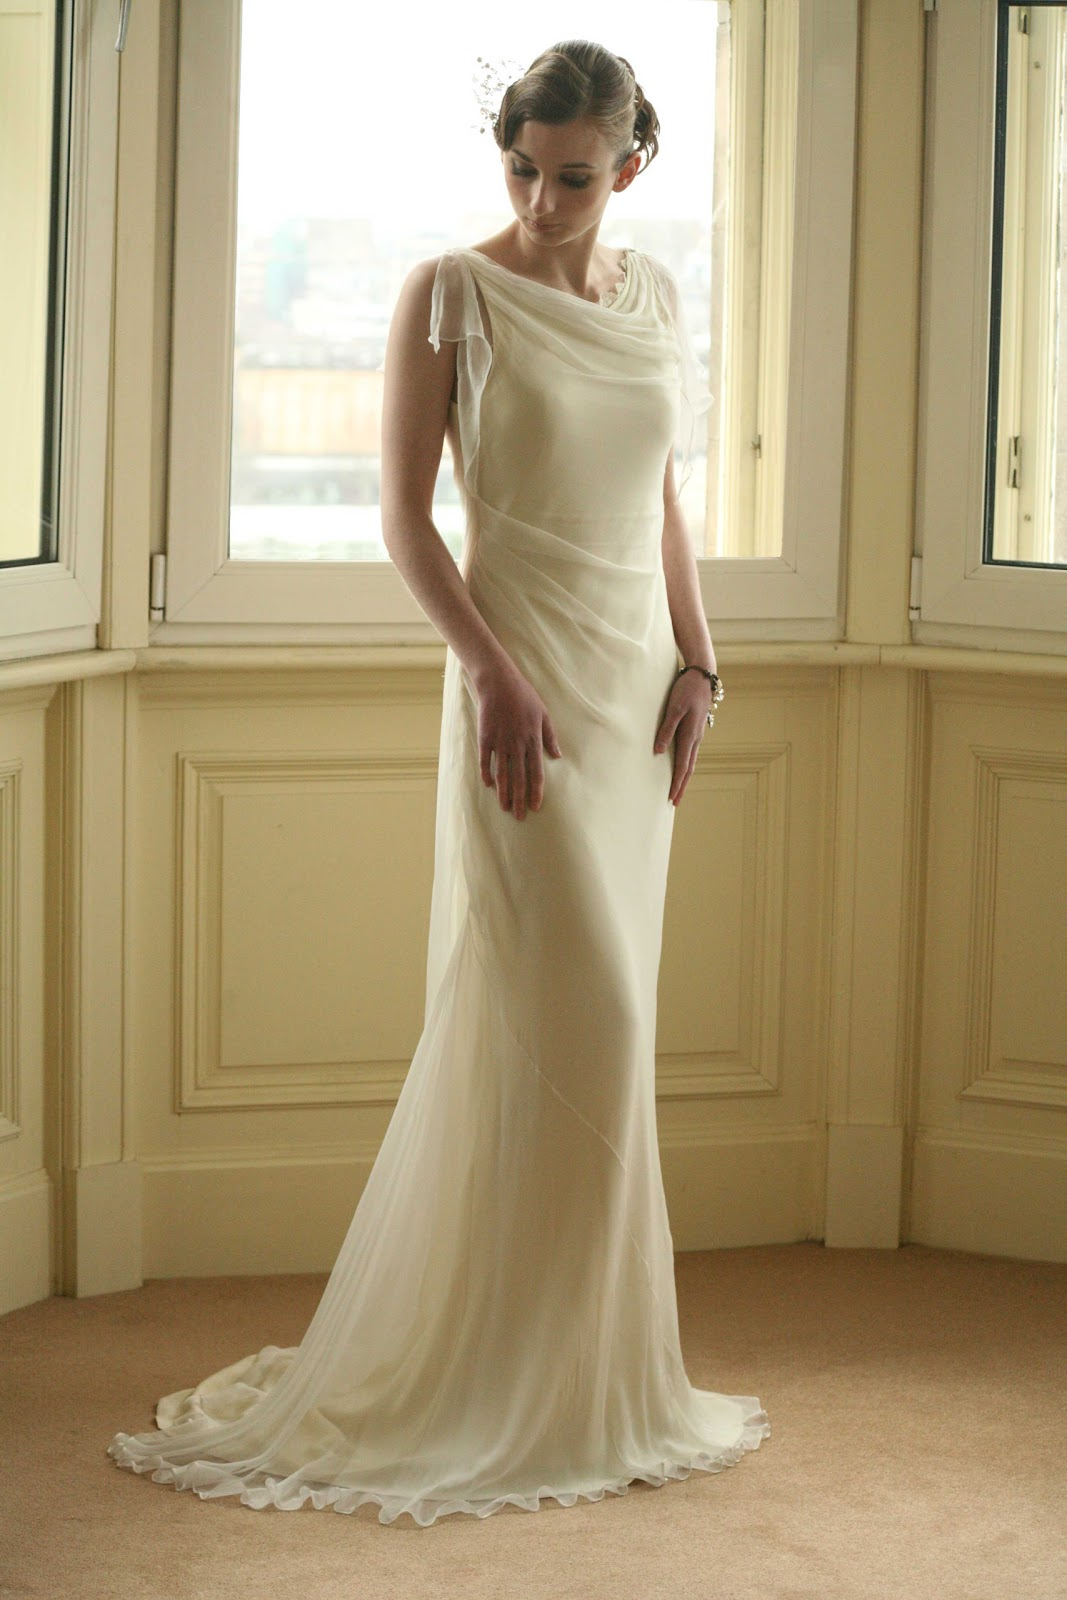 WhiteAzalea Simple Dresses: Simple Chiffon Dresses Make a Cool Summer Wedding